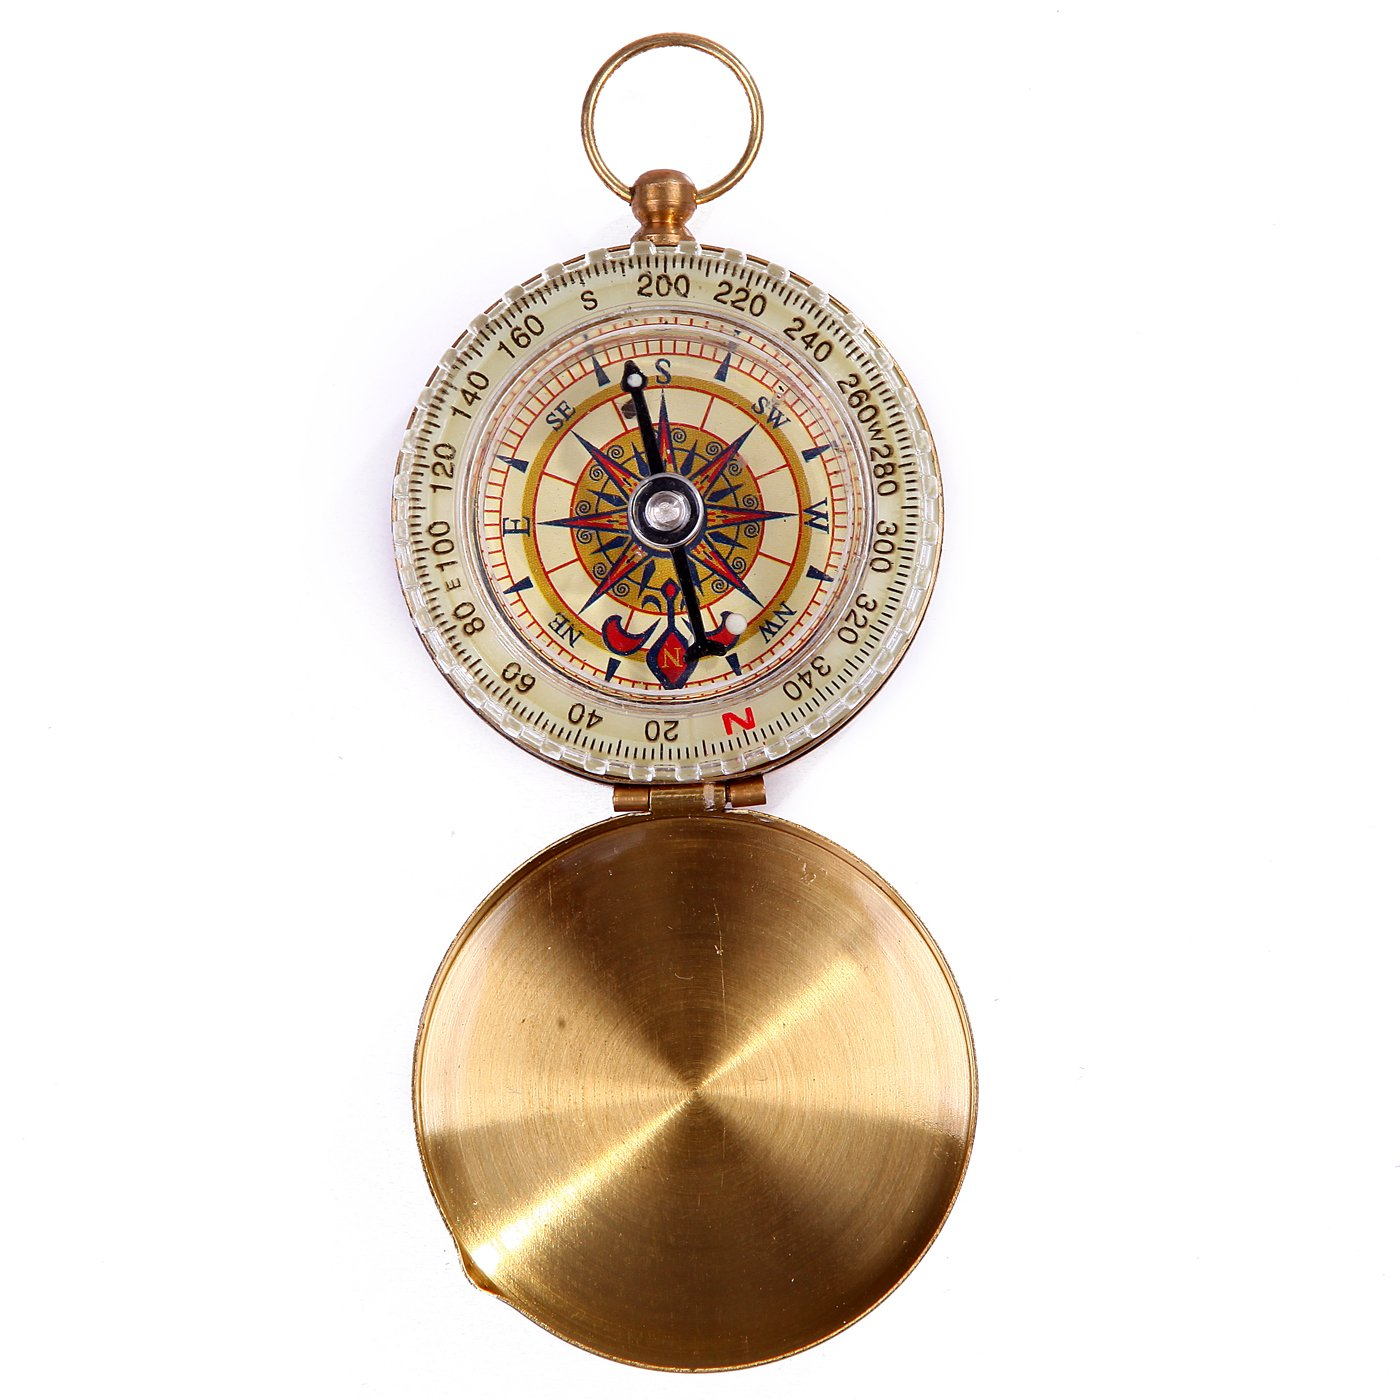 HDE Glow in The Dark Brass Magnetic Pocket Directional Compass for Camping and Hiking